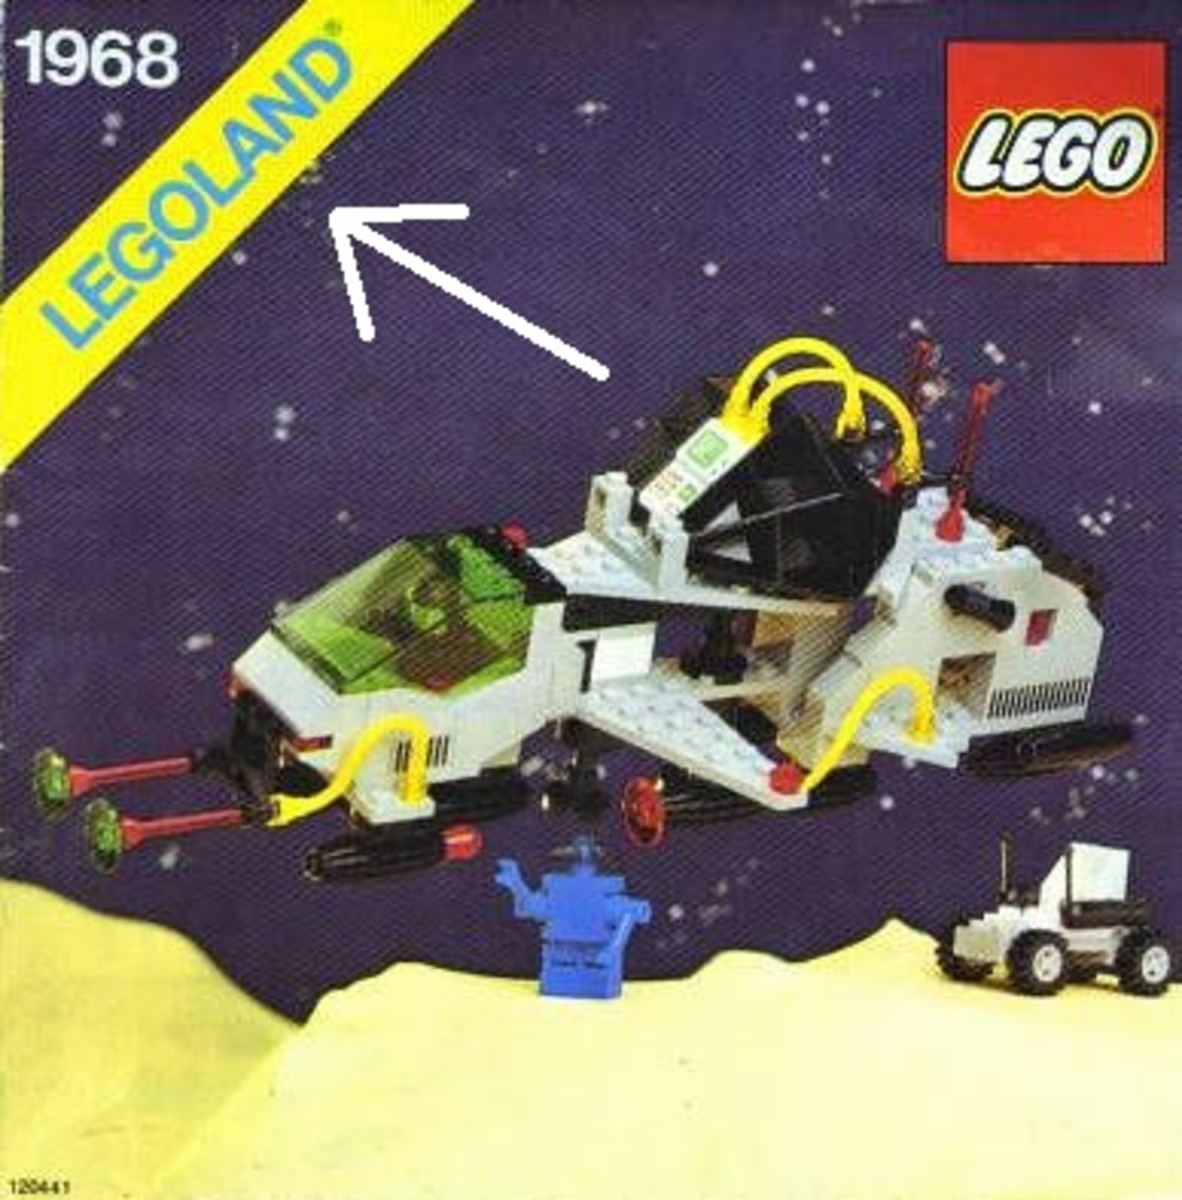 What Do The Lego Item Numbers Mean - Catalogue Number Selection